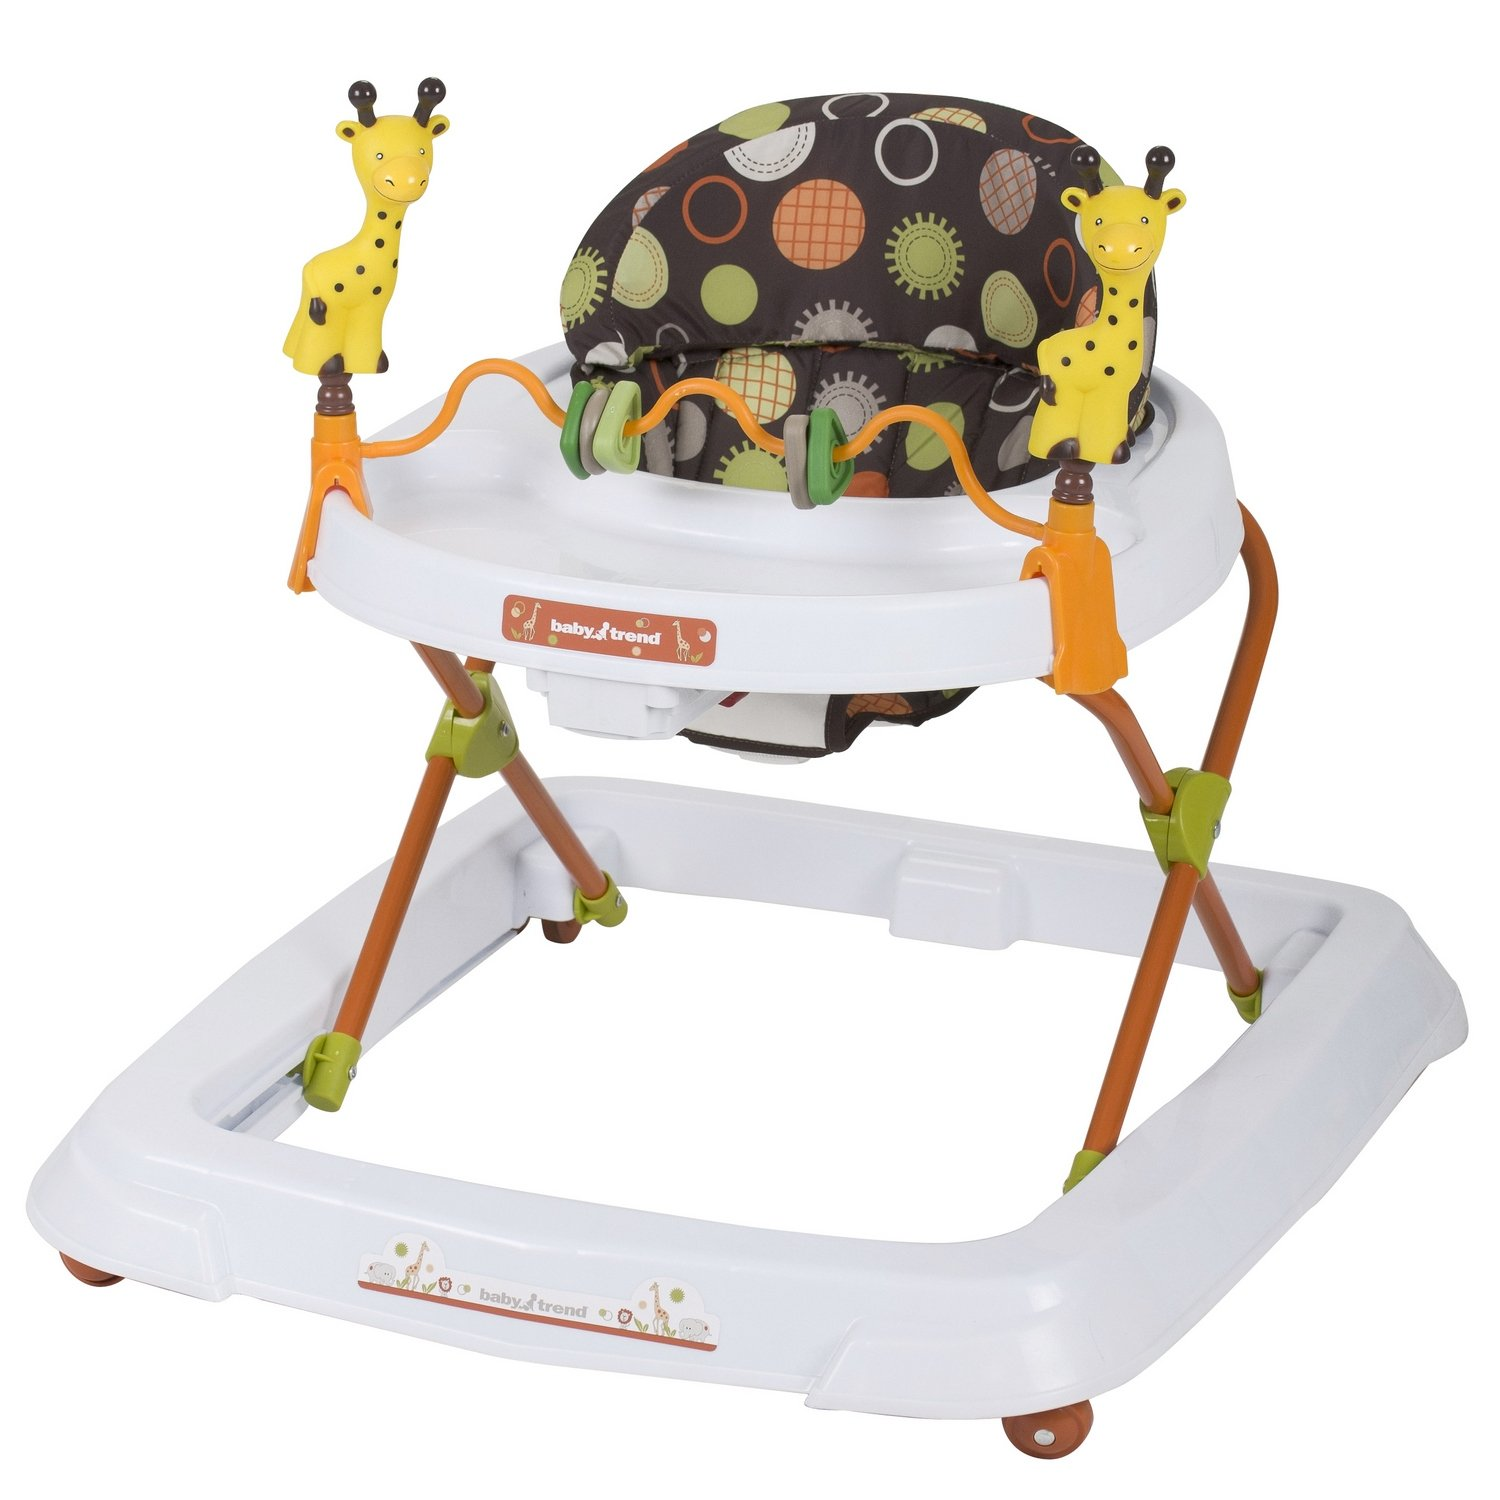 (Baby Trend Walker) and Activity center for Boys & Girls. Learning Walkers First Steeps w Multi-Directional Wheels that Offer Freedom of Movement. 3-Position Height Adjust Superior Support & Stabilit Safari Kingdom Walker